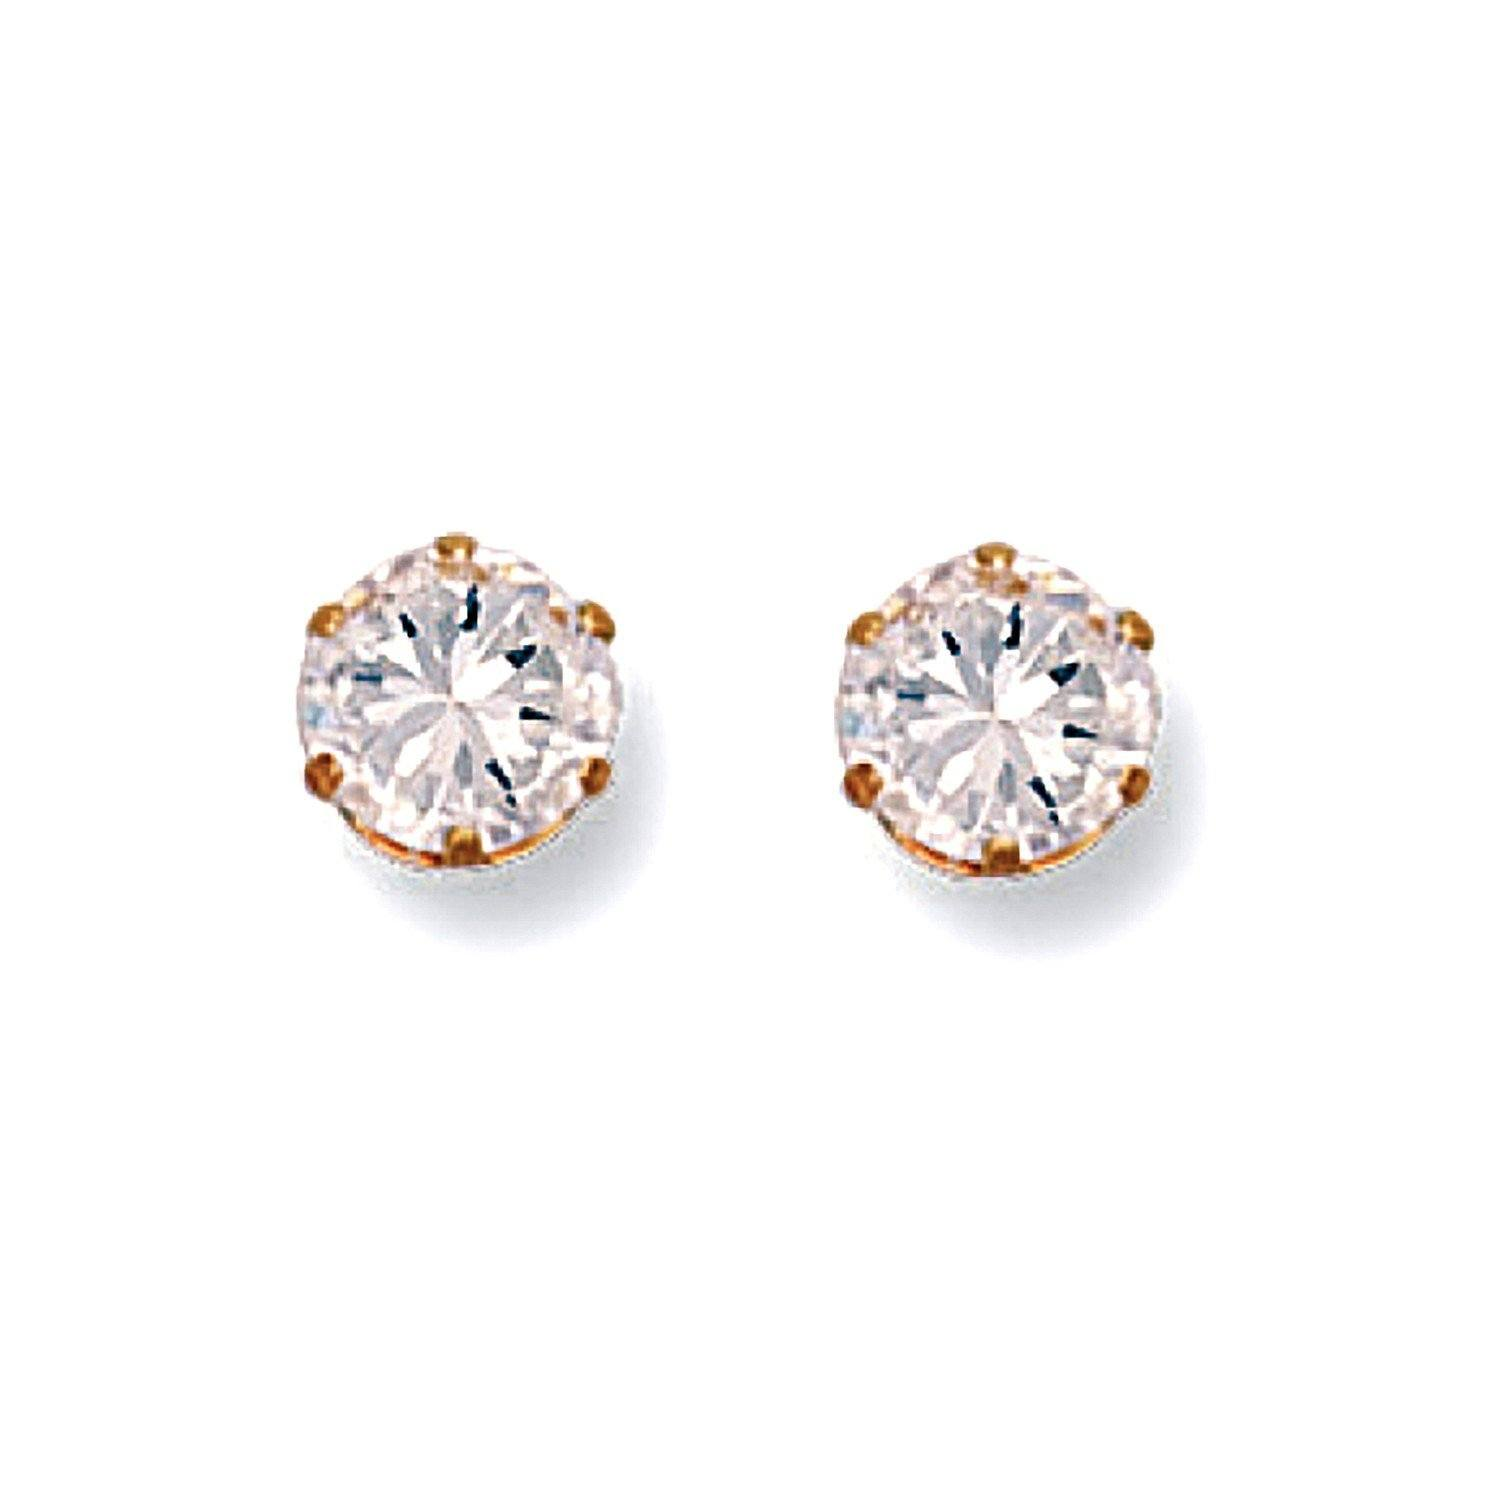 Gold CZ Stud Earrings 6 mm Jewellery Hanron